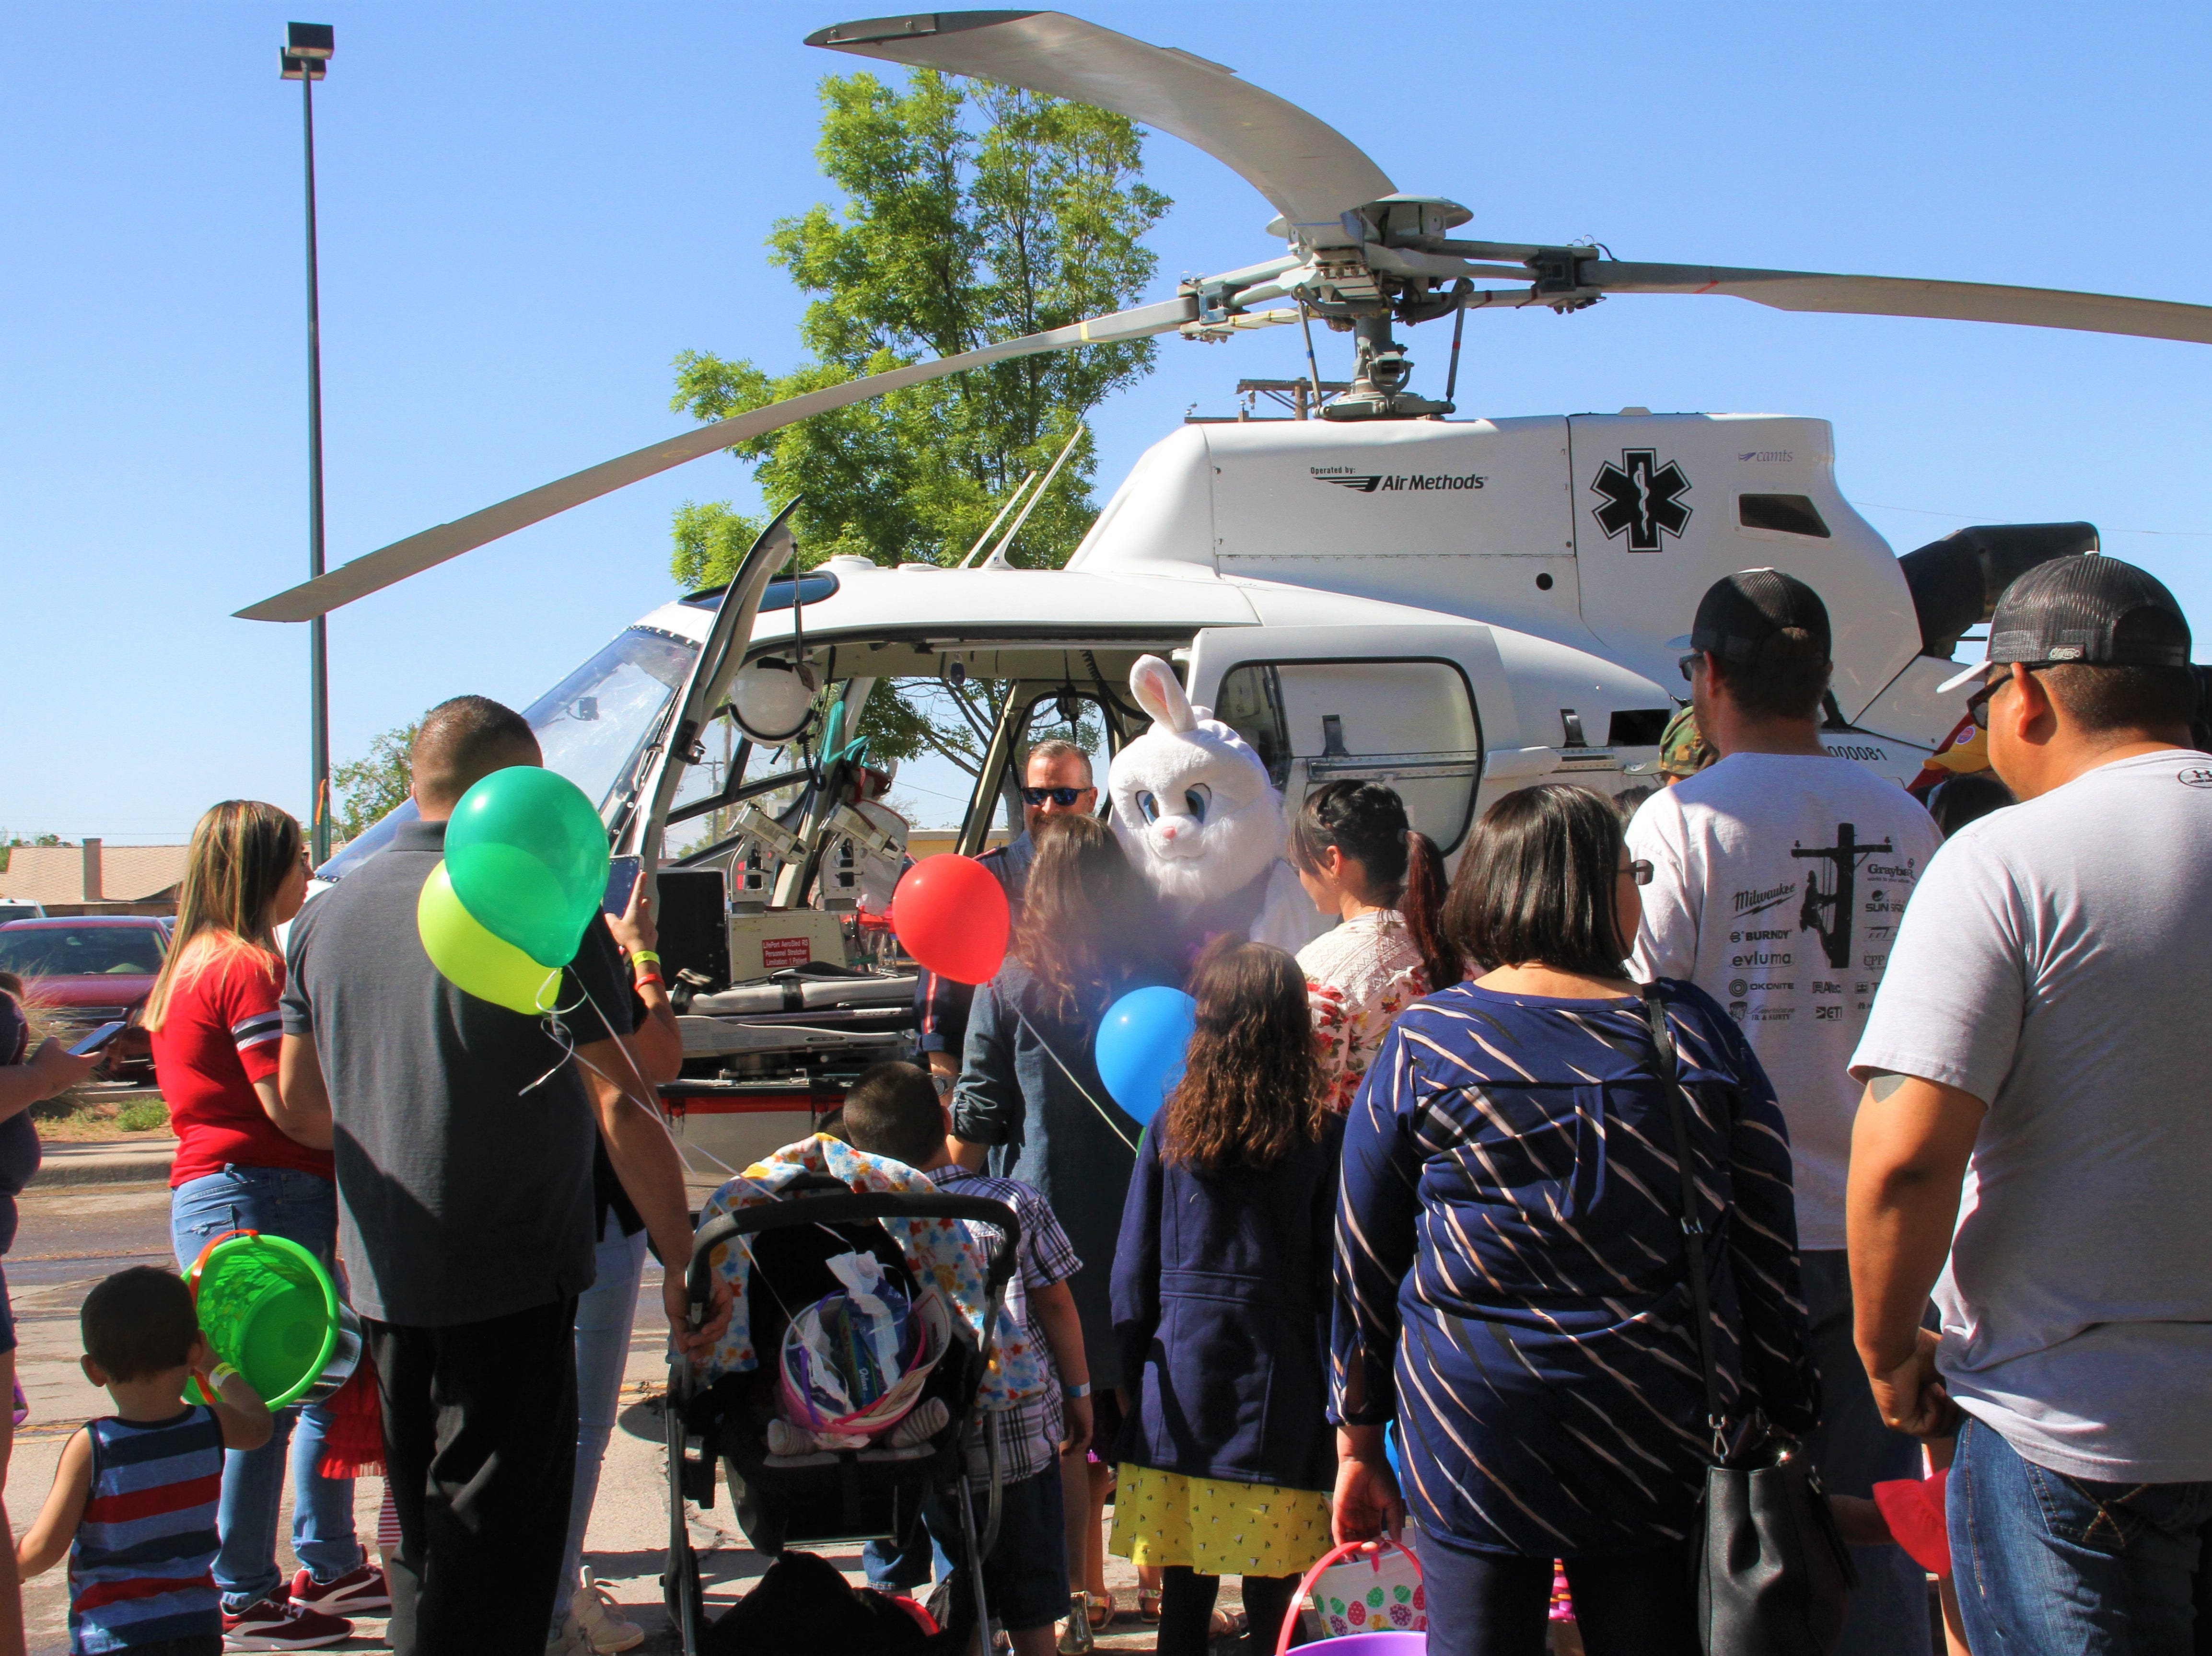 Easter bunny arrived by helicopter!